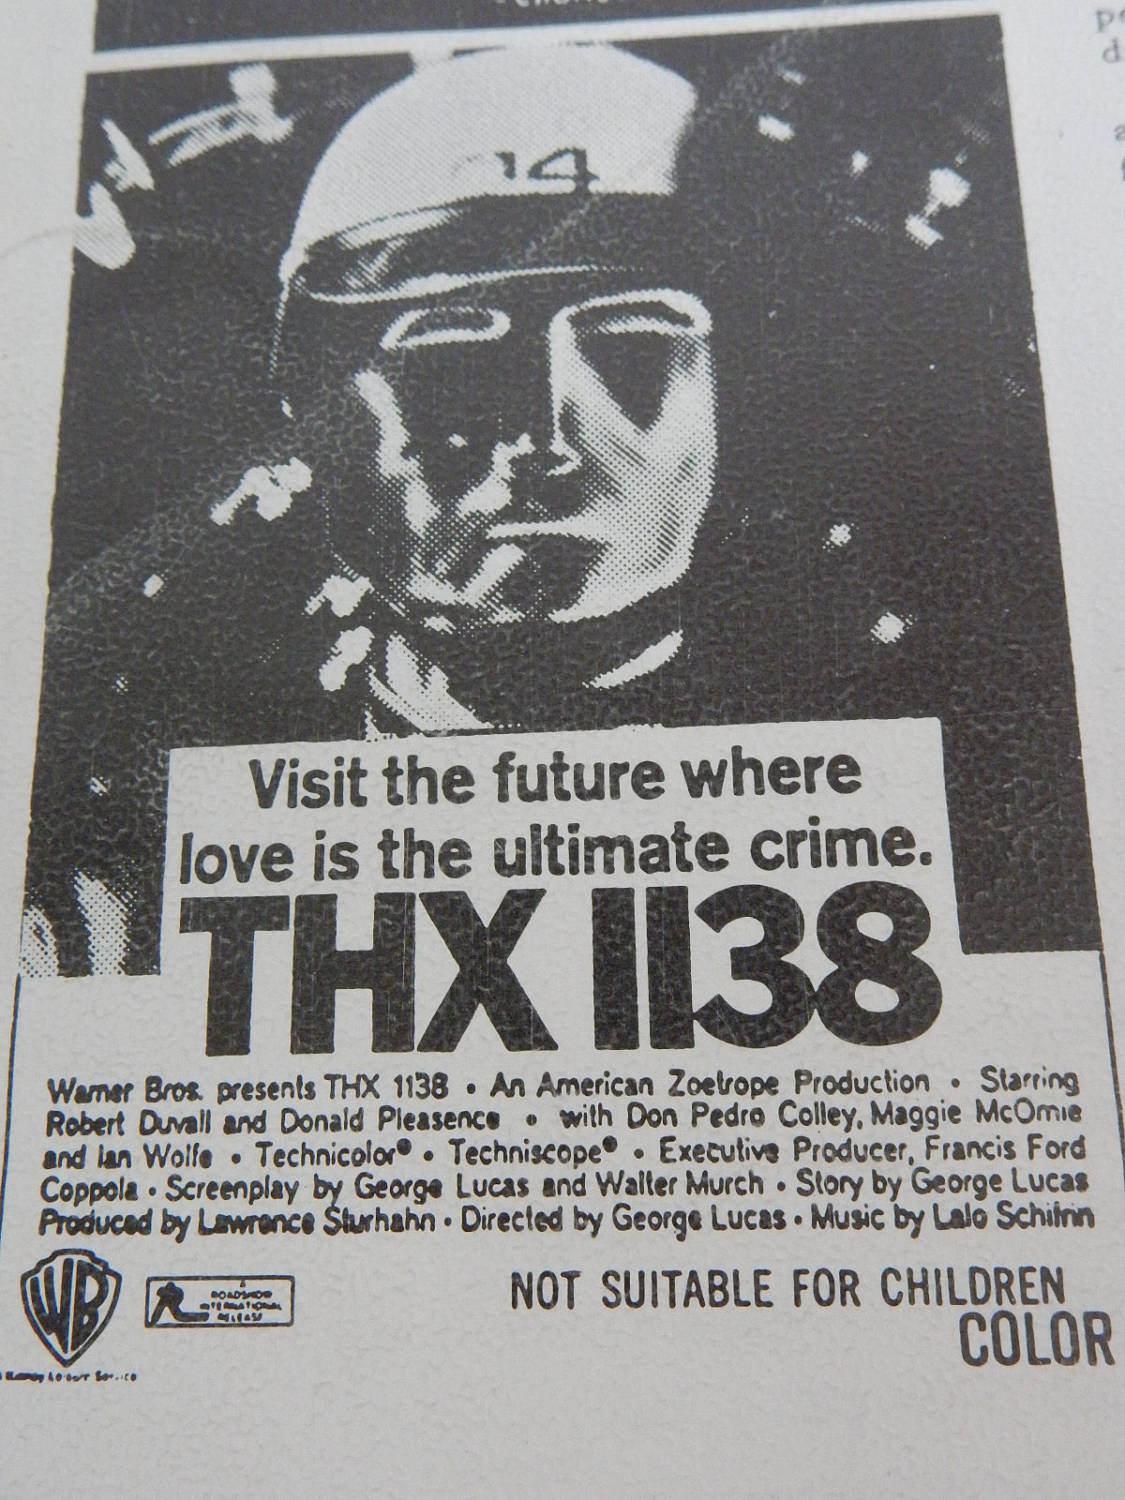 thx 1138 promotional flyer